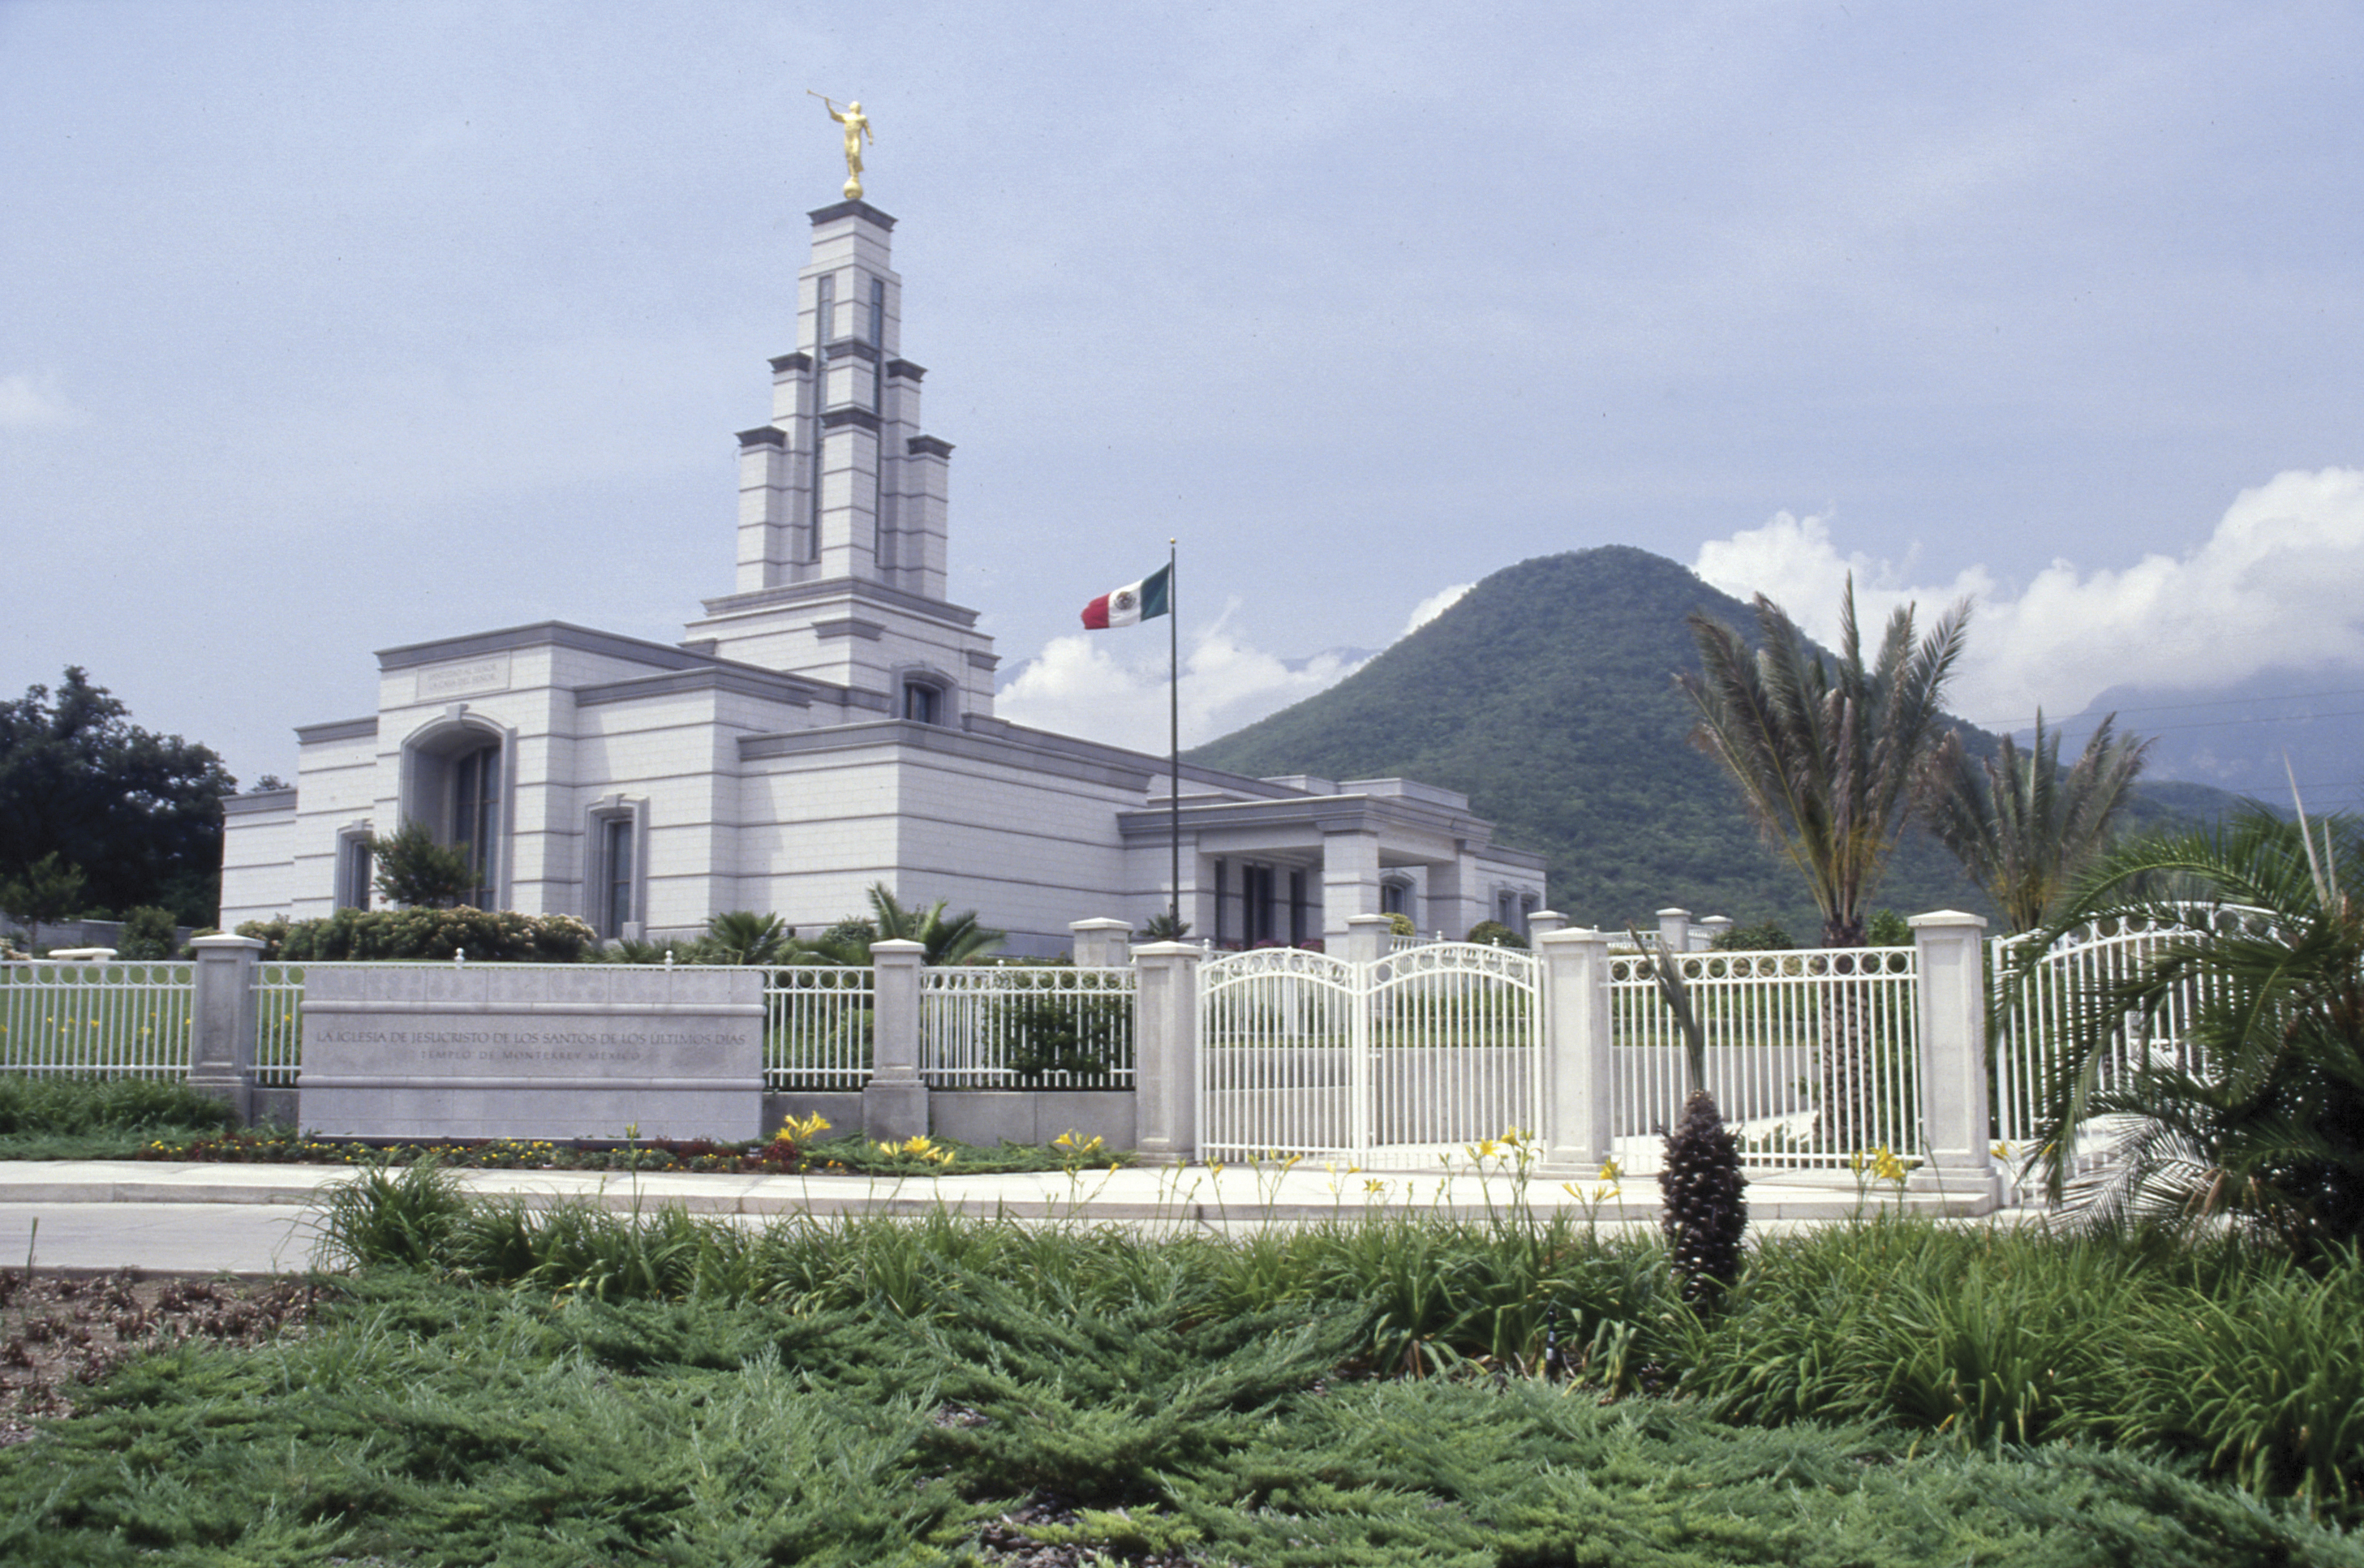 The Monterrey Mexico Temple name sign, including the entrance and scenery.